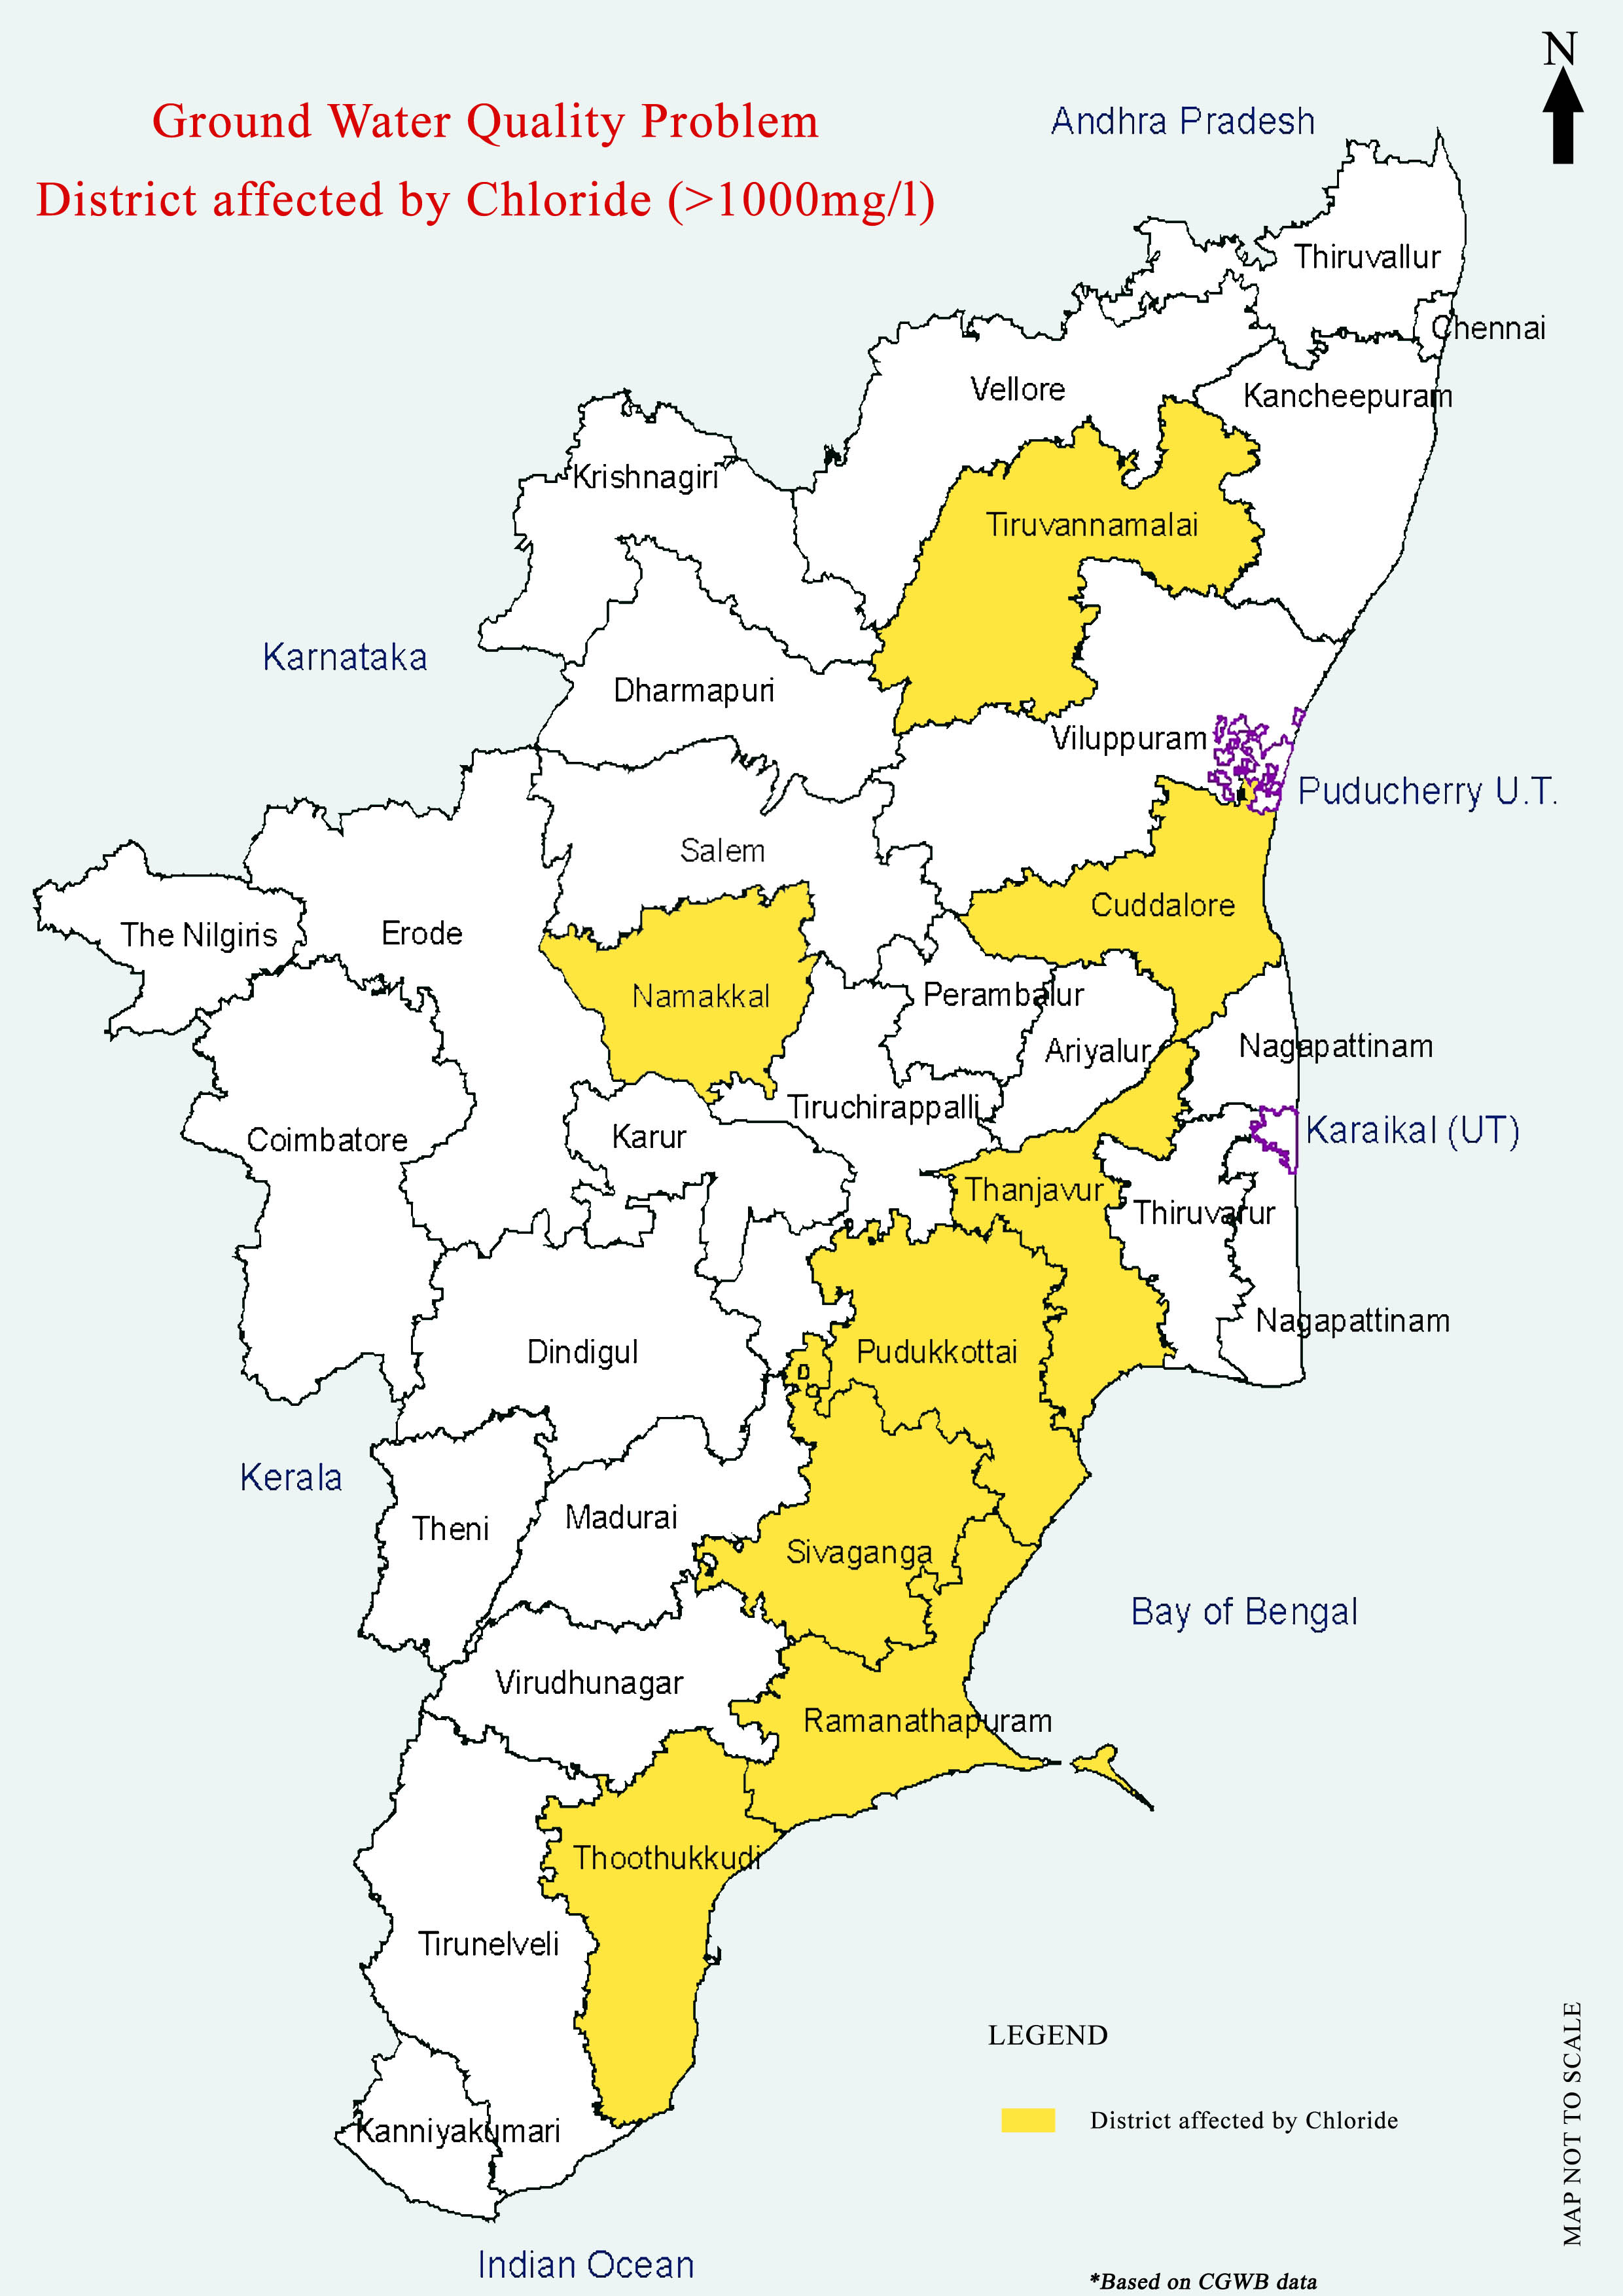 Maps On Groundwater QualityTamil Nadu A Collection By - Tamilnadu map